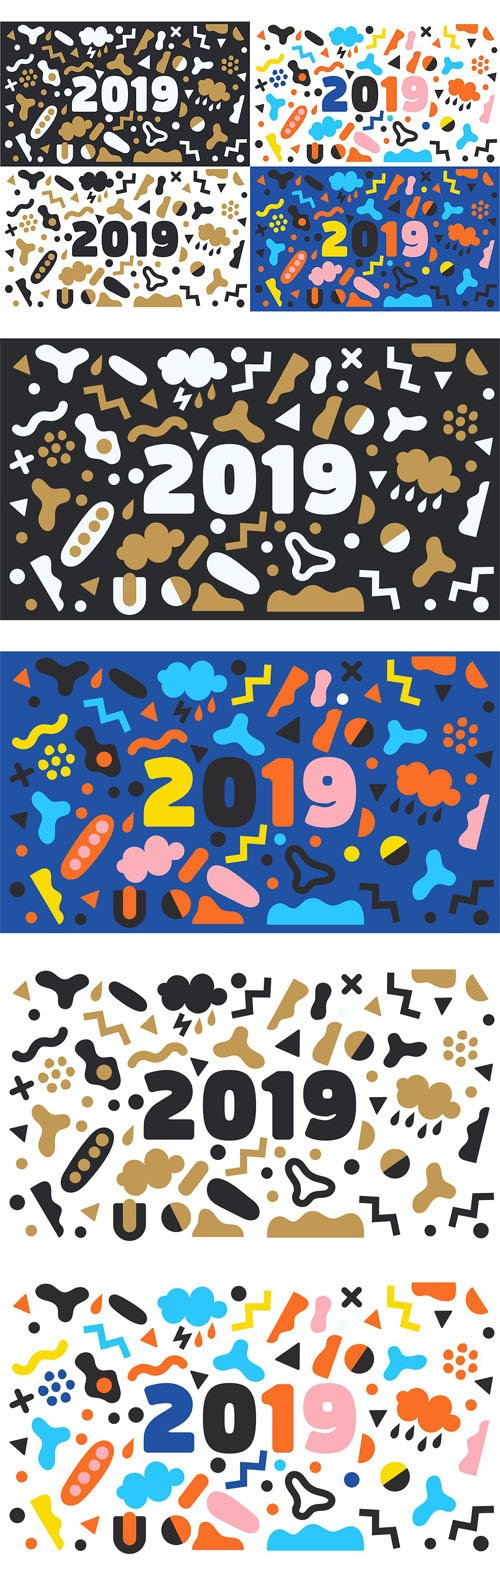 CM - 4 New Year 2019 Vector Background Set